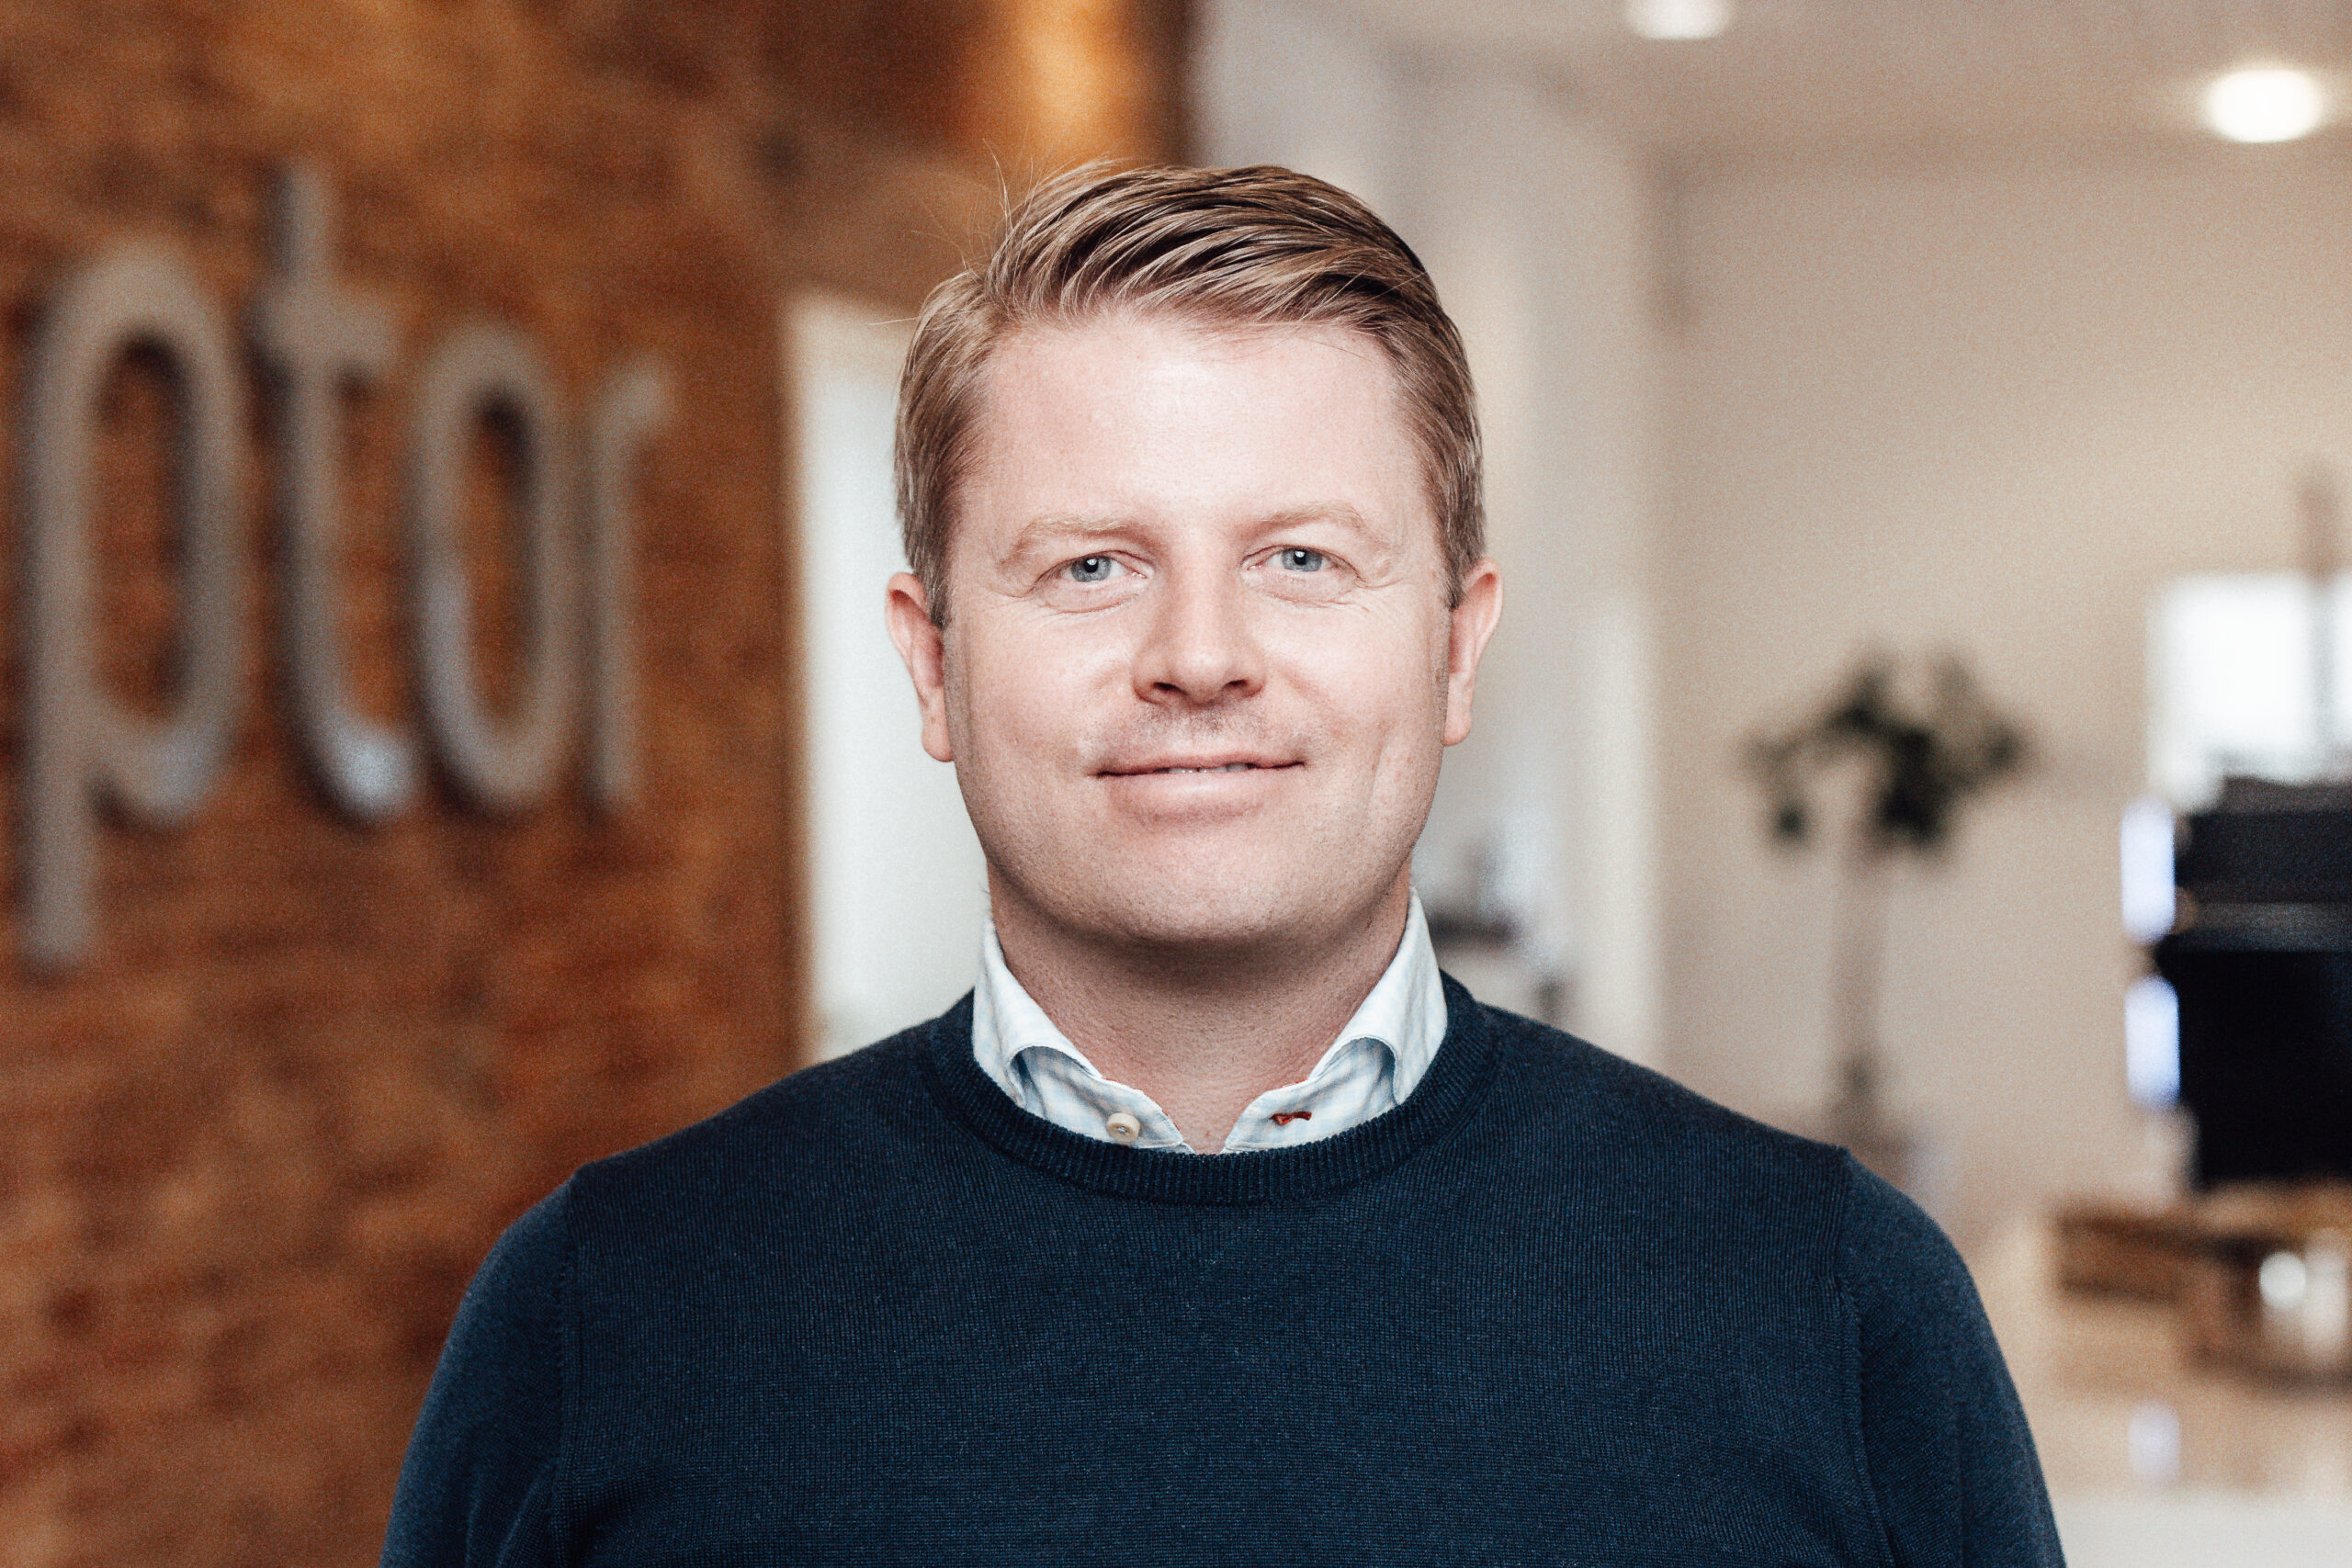 Kenneth Boll, CEO at Raptor Services